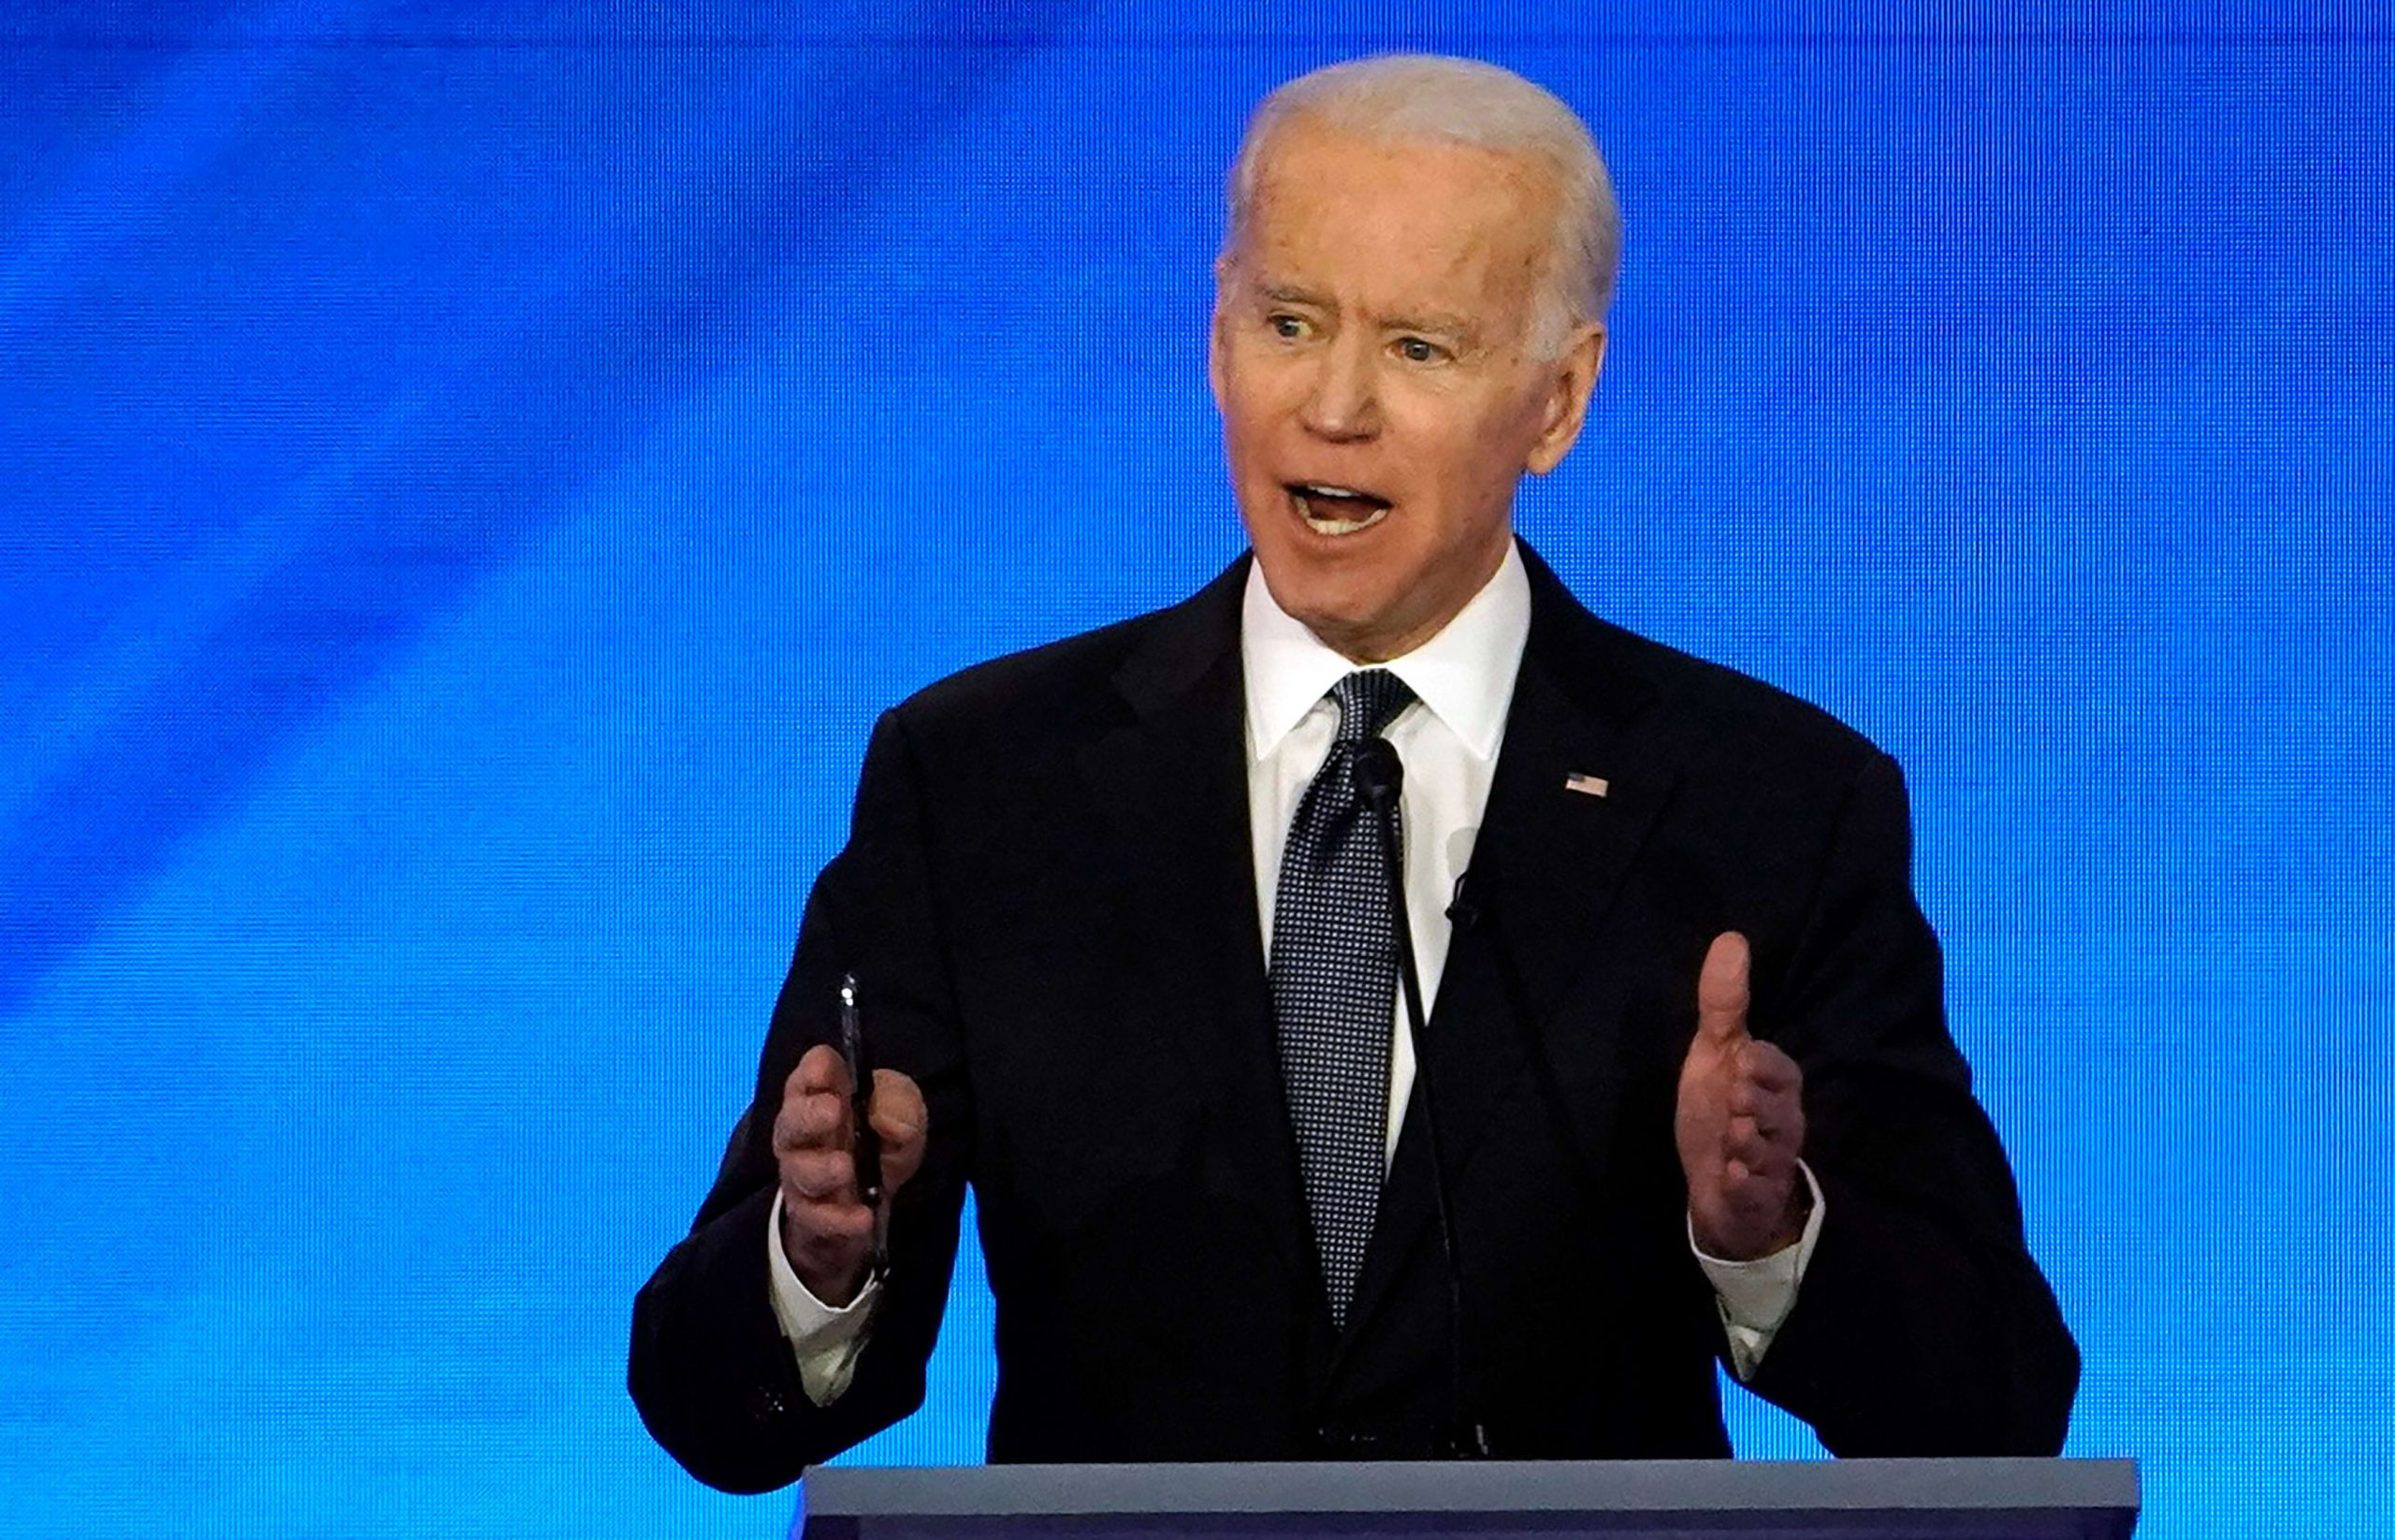 Democratic debate: Biden predicts he will 'take a hit' in New Hampshire primary after 'gut punch' in Iowa